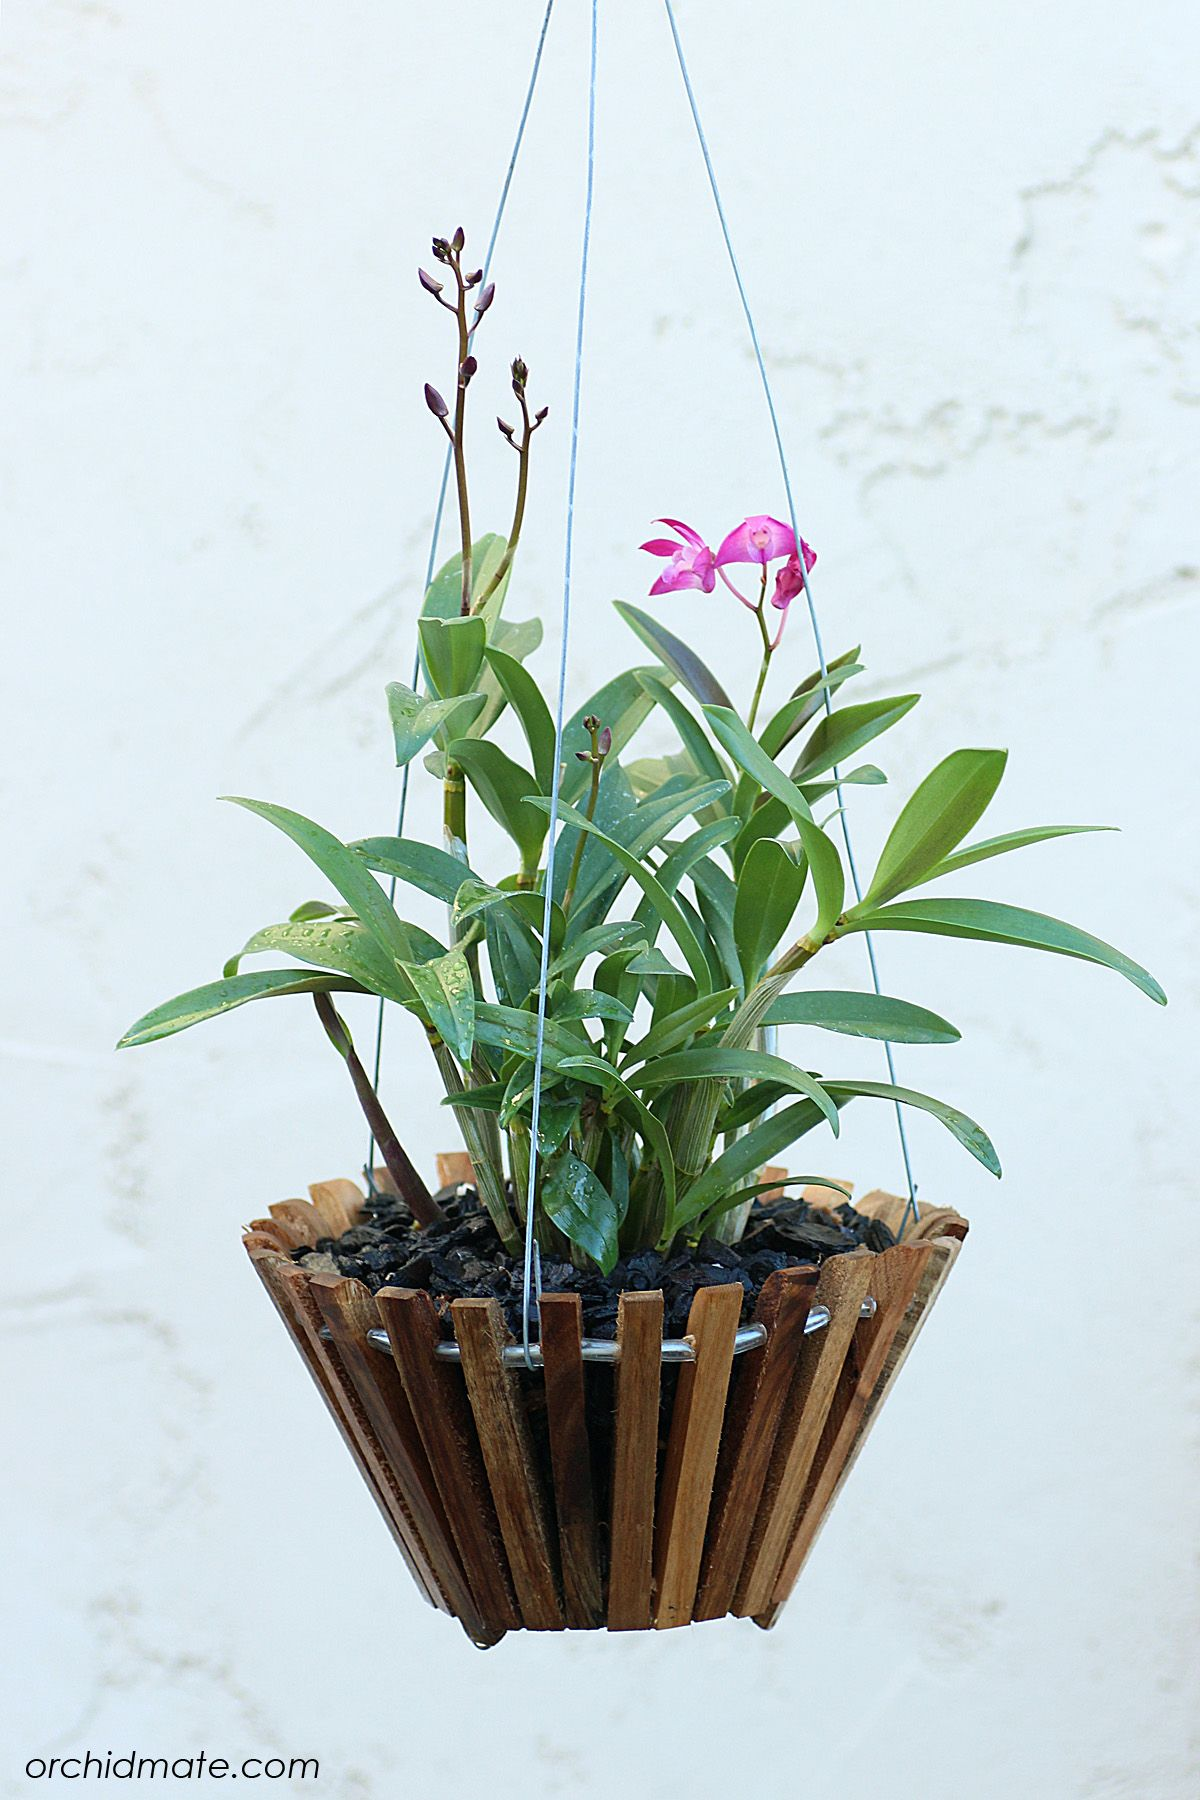 Trade Orchid Supplies Wood Baskets Orchids Orchids Orchid